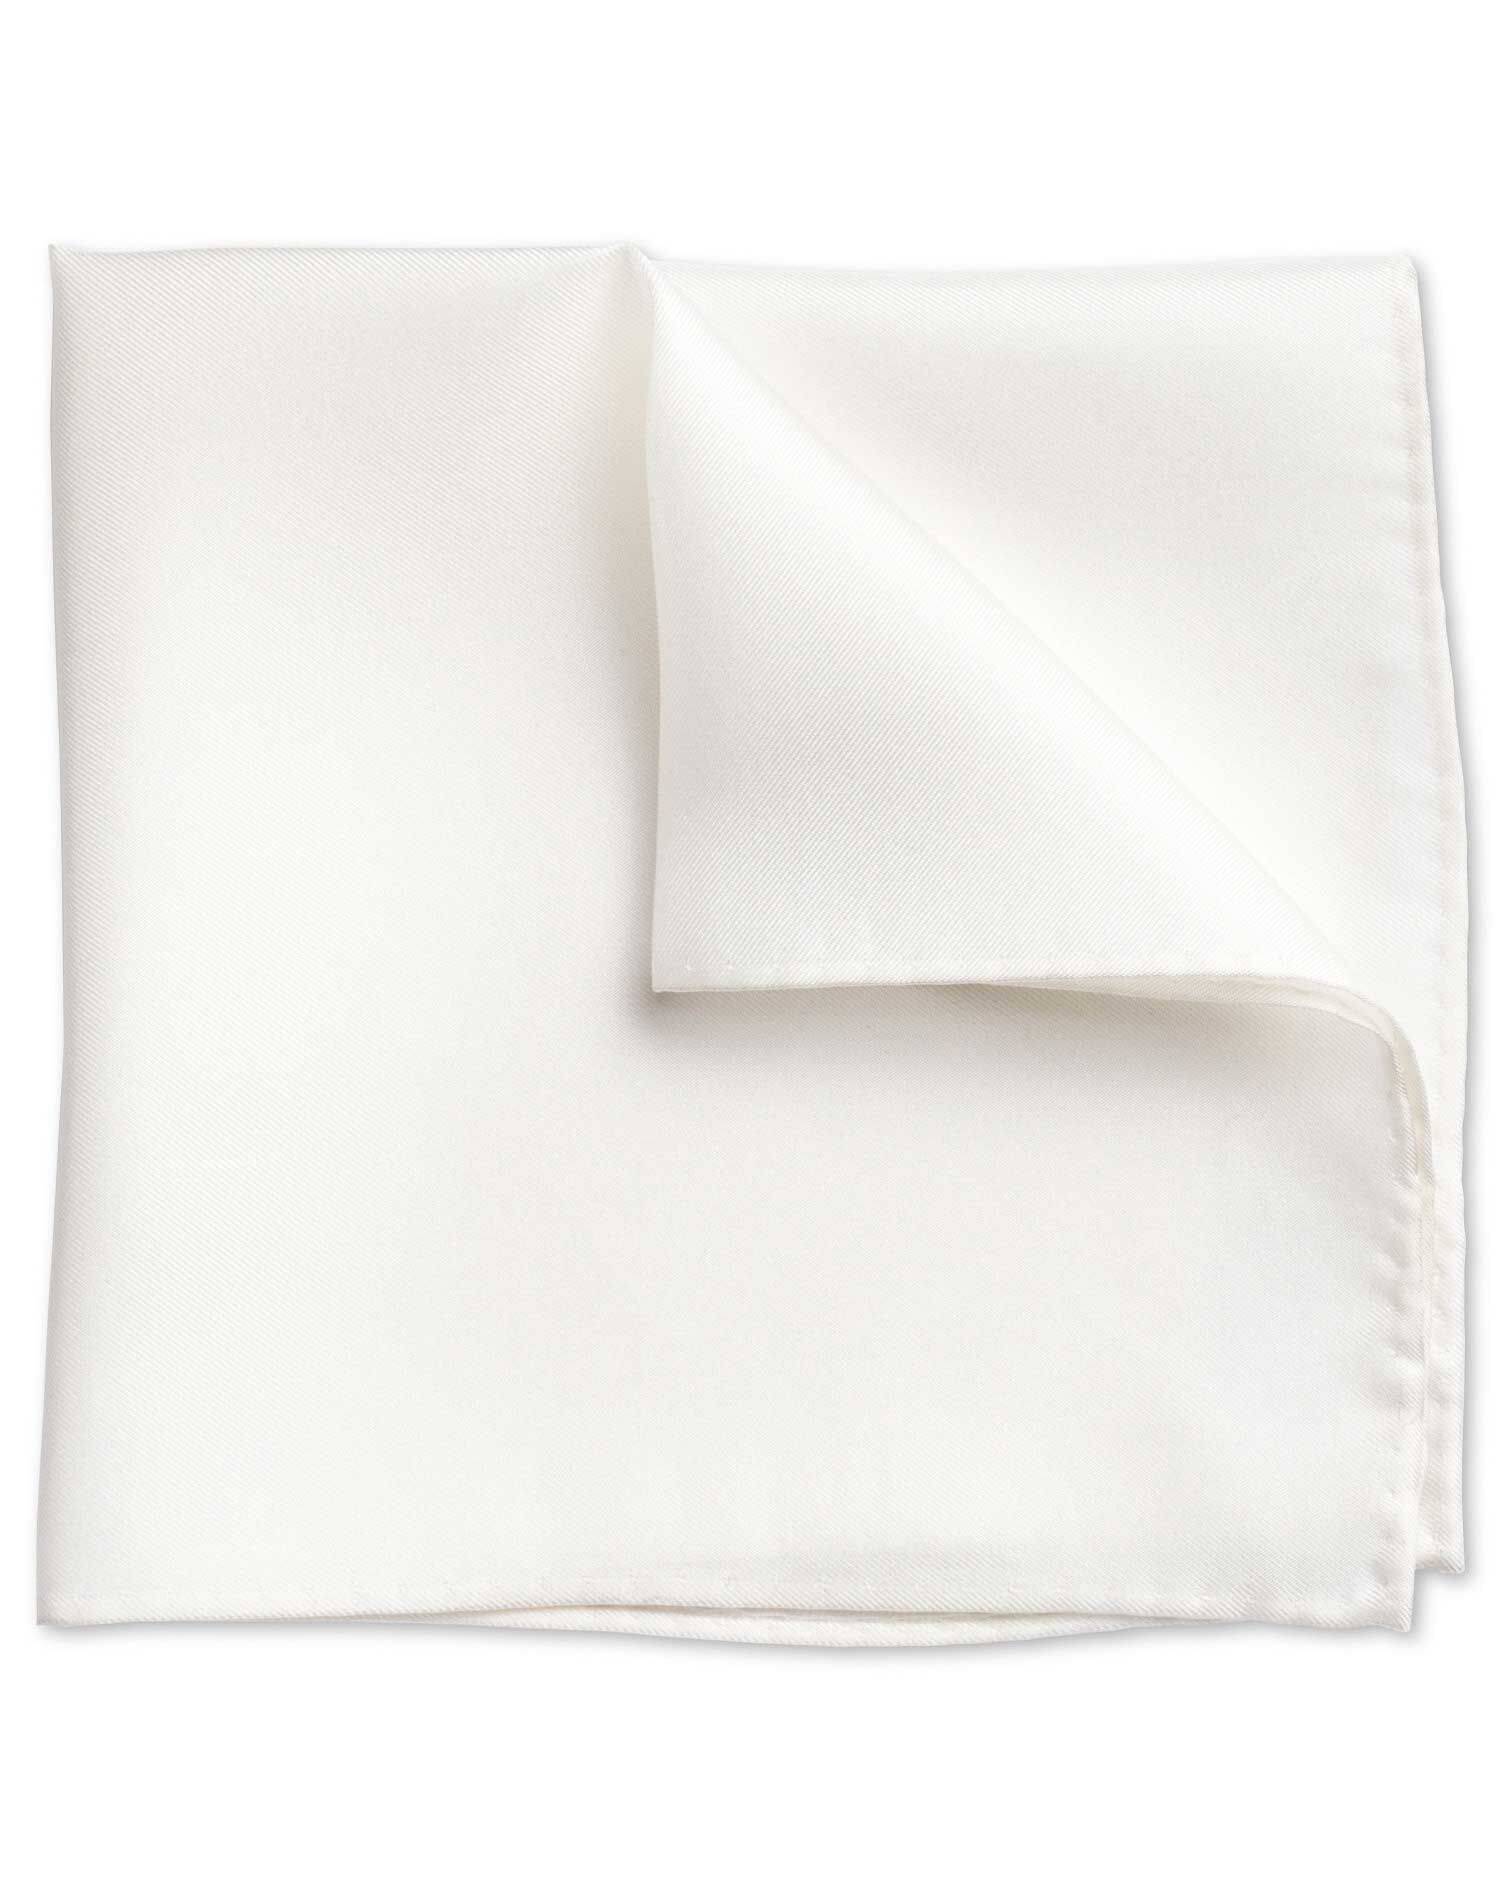 Victorian Men's Clothing Charles Tyrwhitt White silk evening pocket square £14.95 AT vintagedancer.com